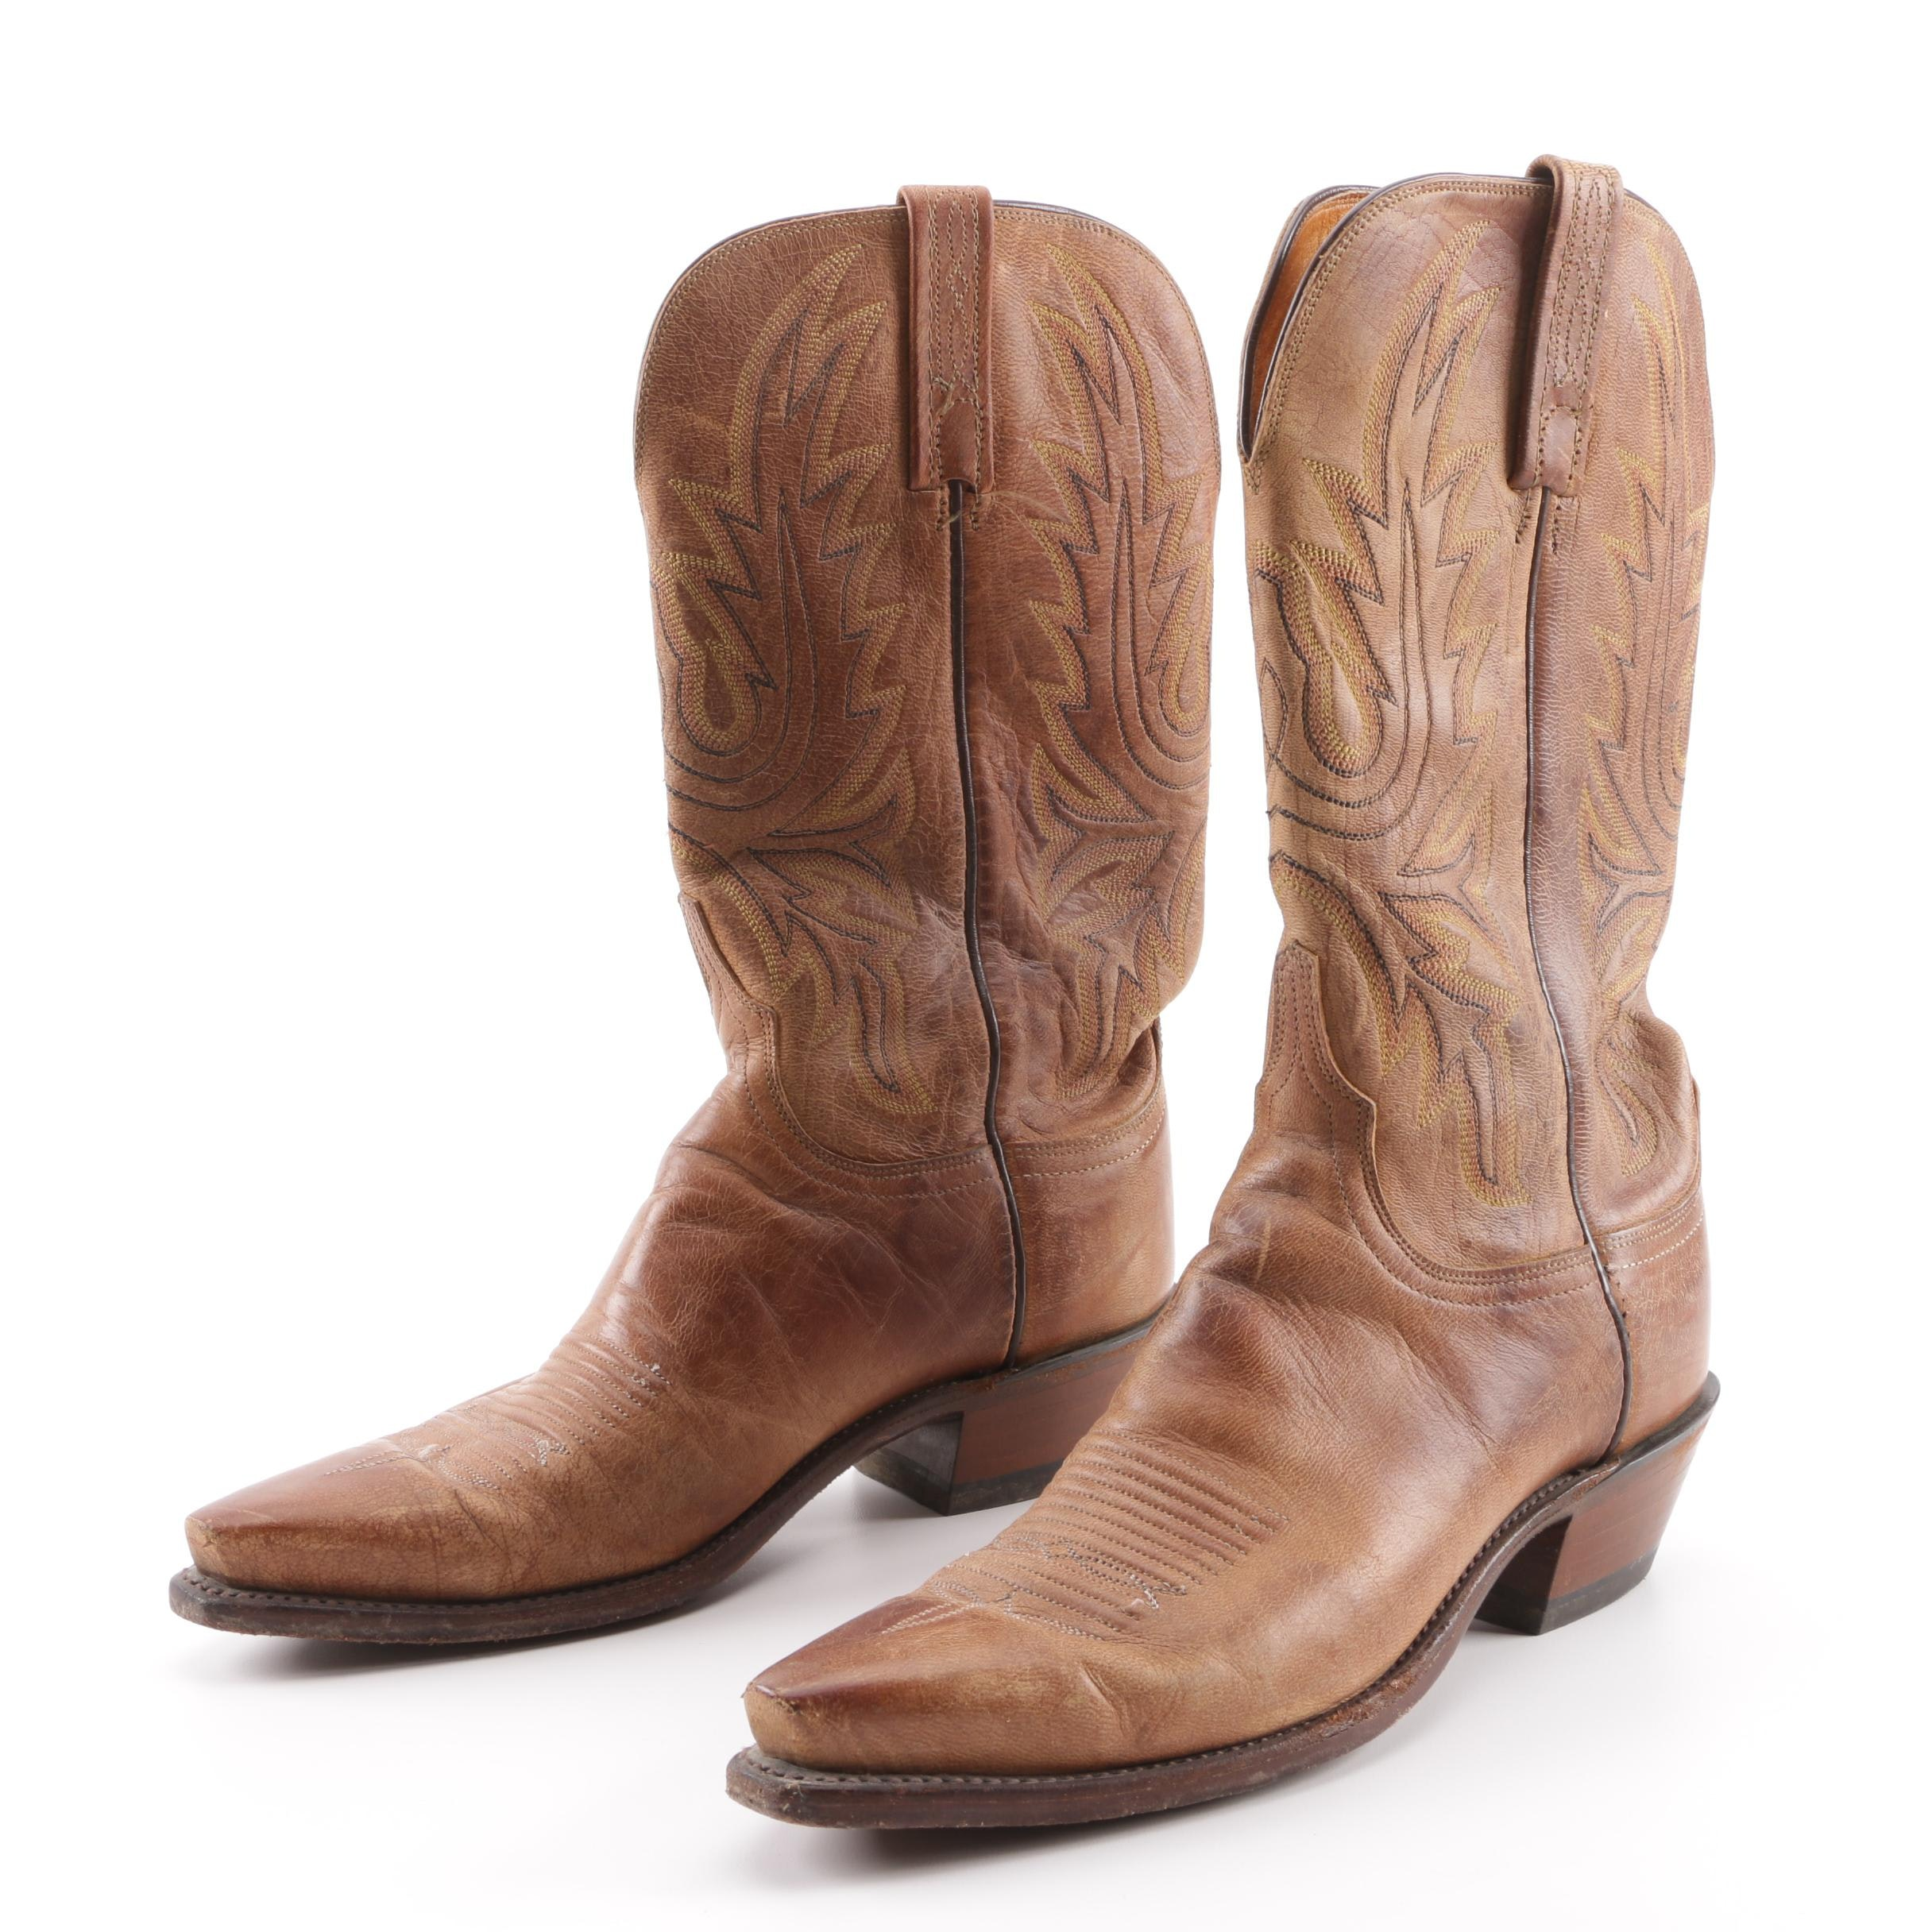 Women's Lucchese Embroidered Tan Leather Western Boots